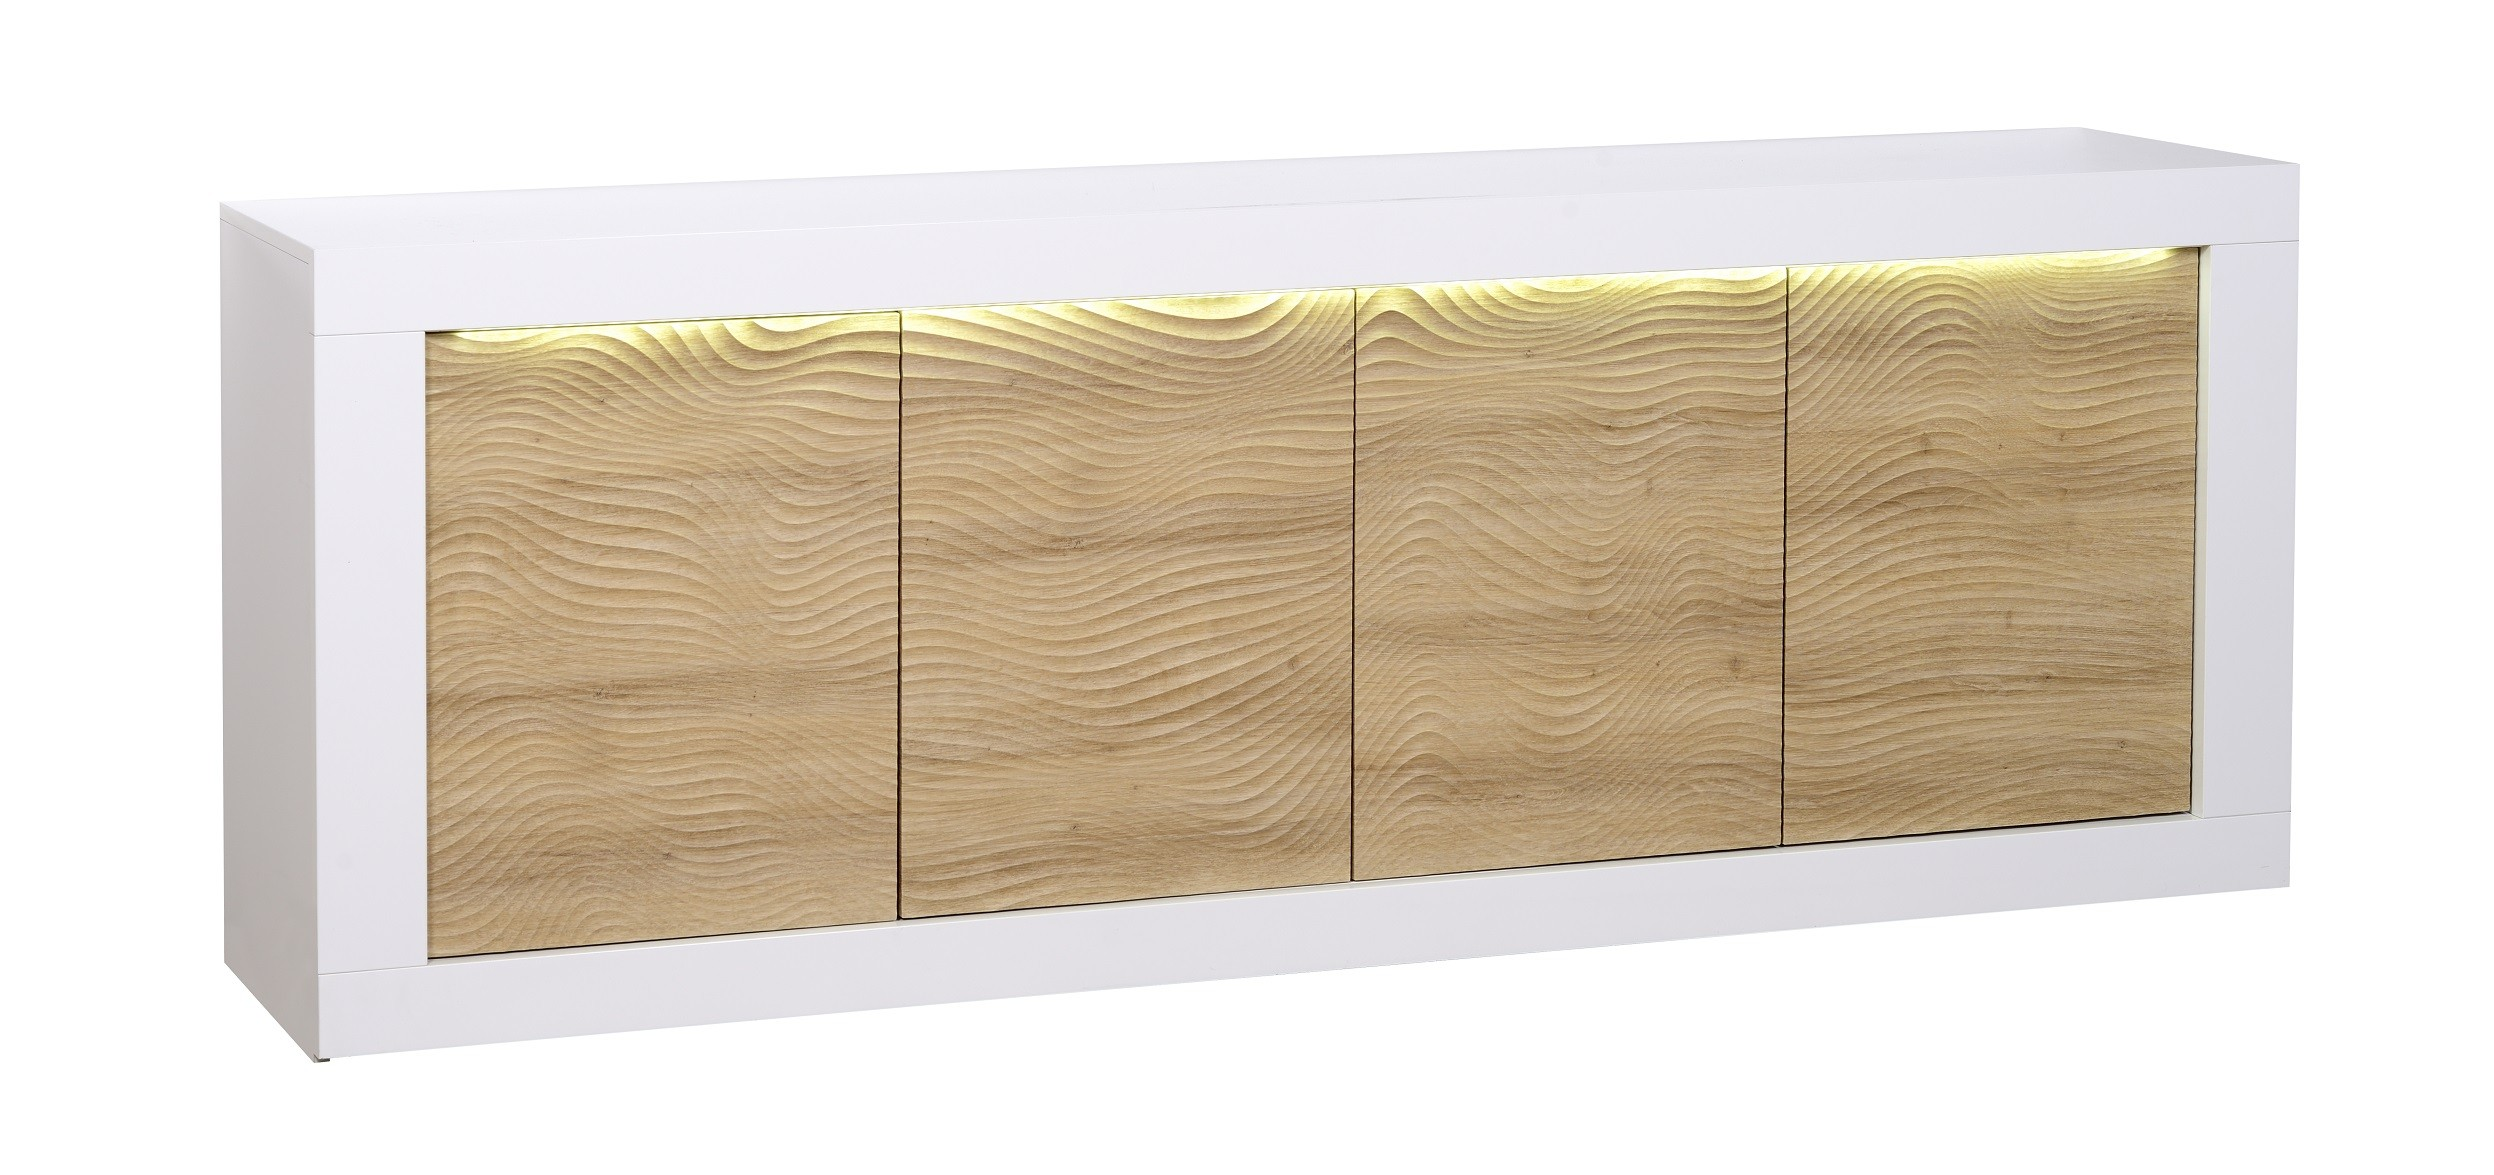 Karma Ii Large White Gloss And Oak Sideboard With Led Lights  # Meuble Tv Karma